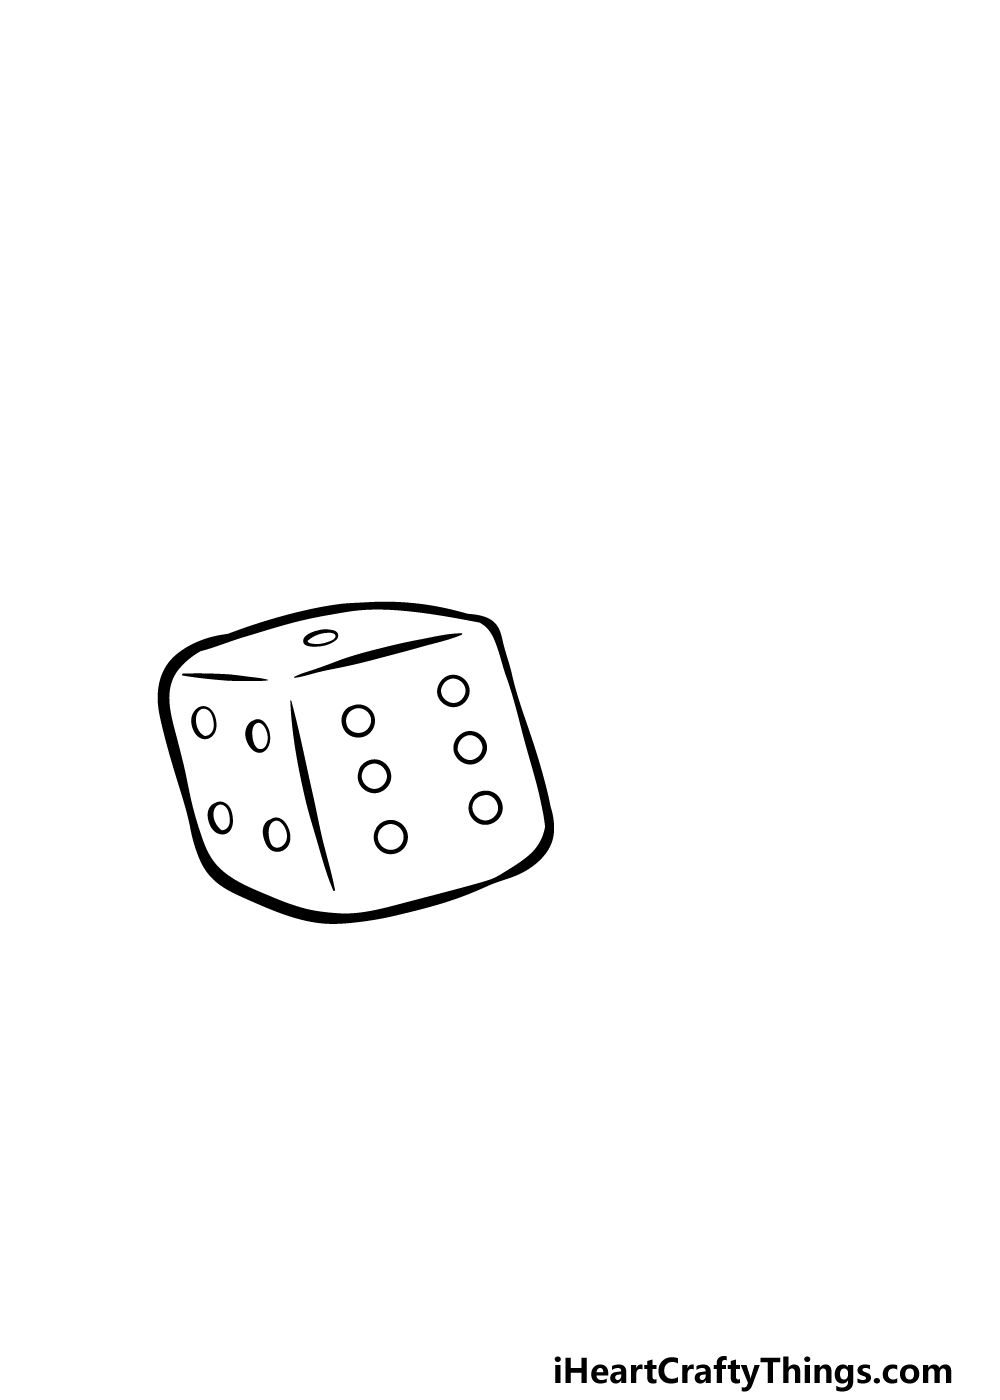 drawing the dice step 1